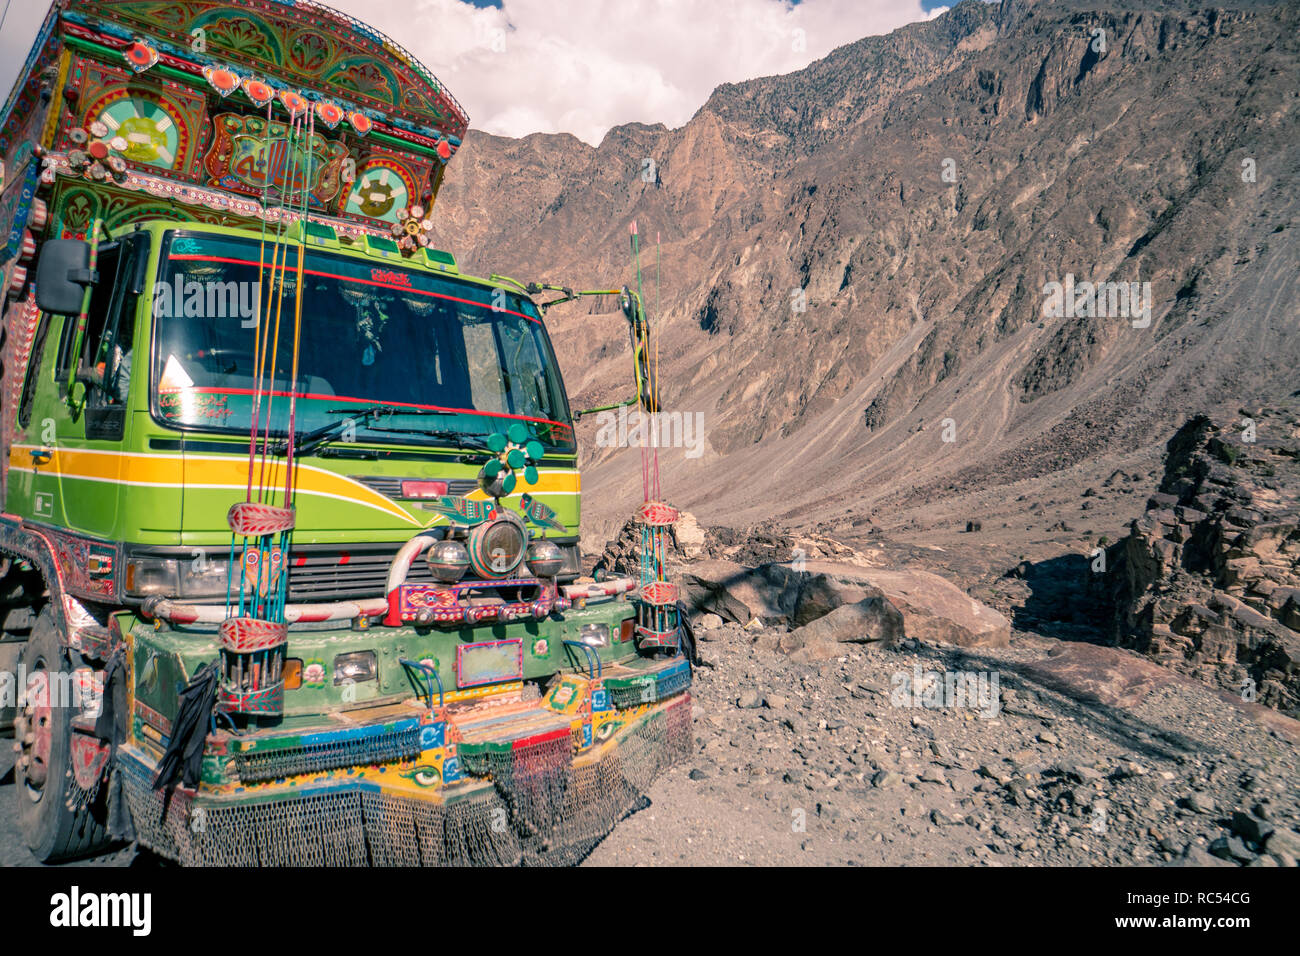 Decorated truck in Pakistan on dangerous road in the mountains. - Stock Image